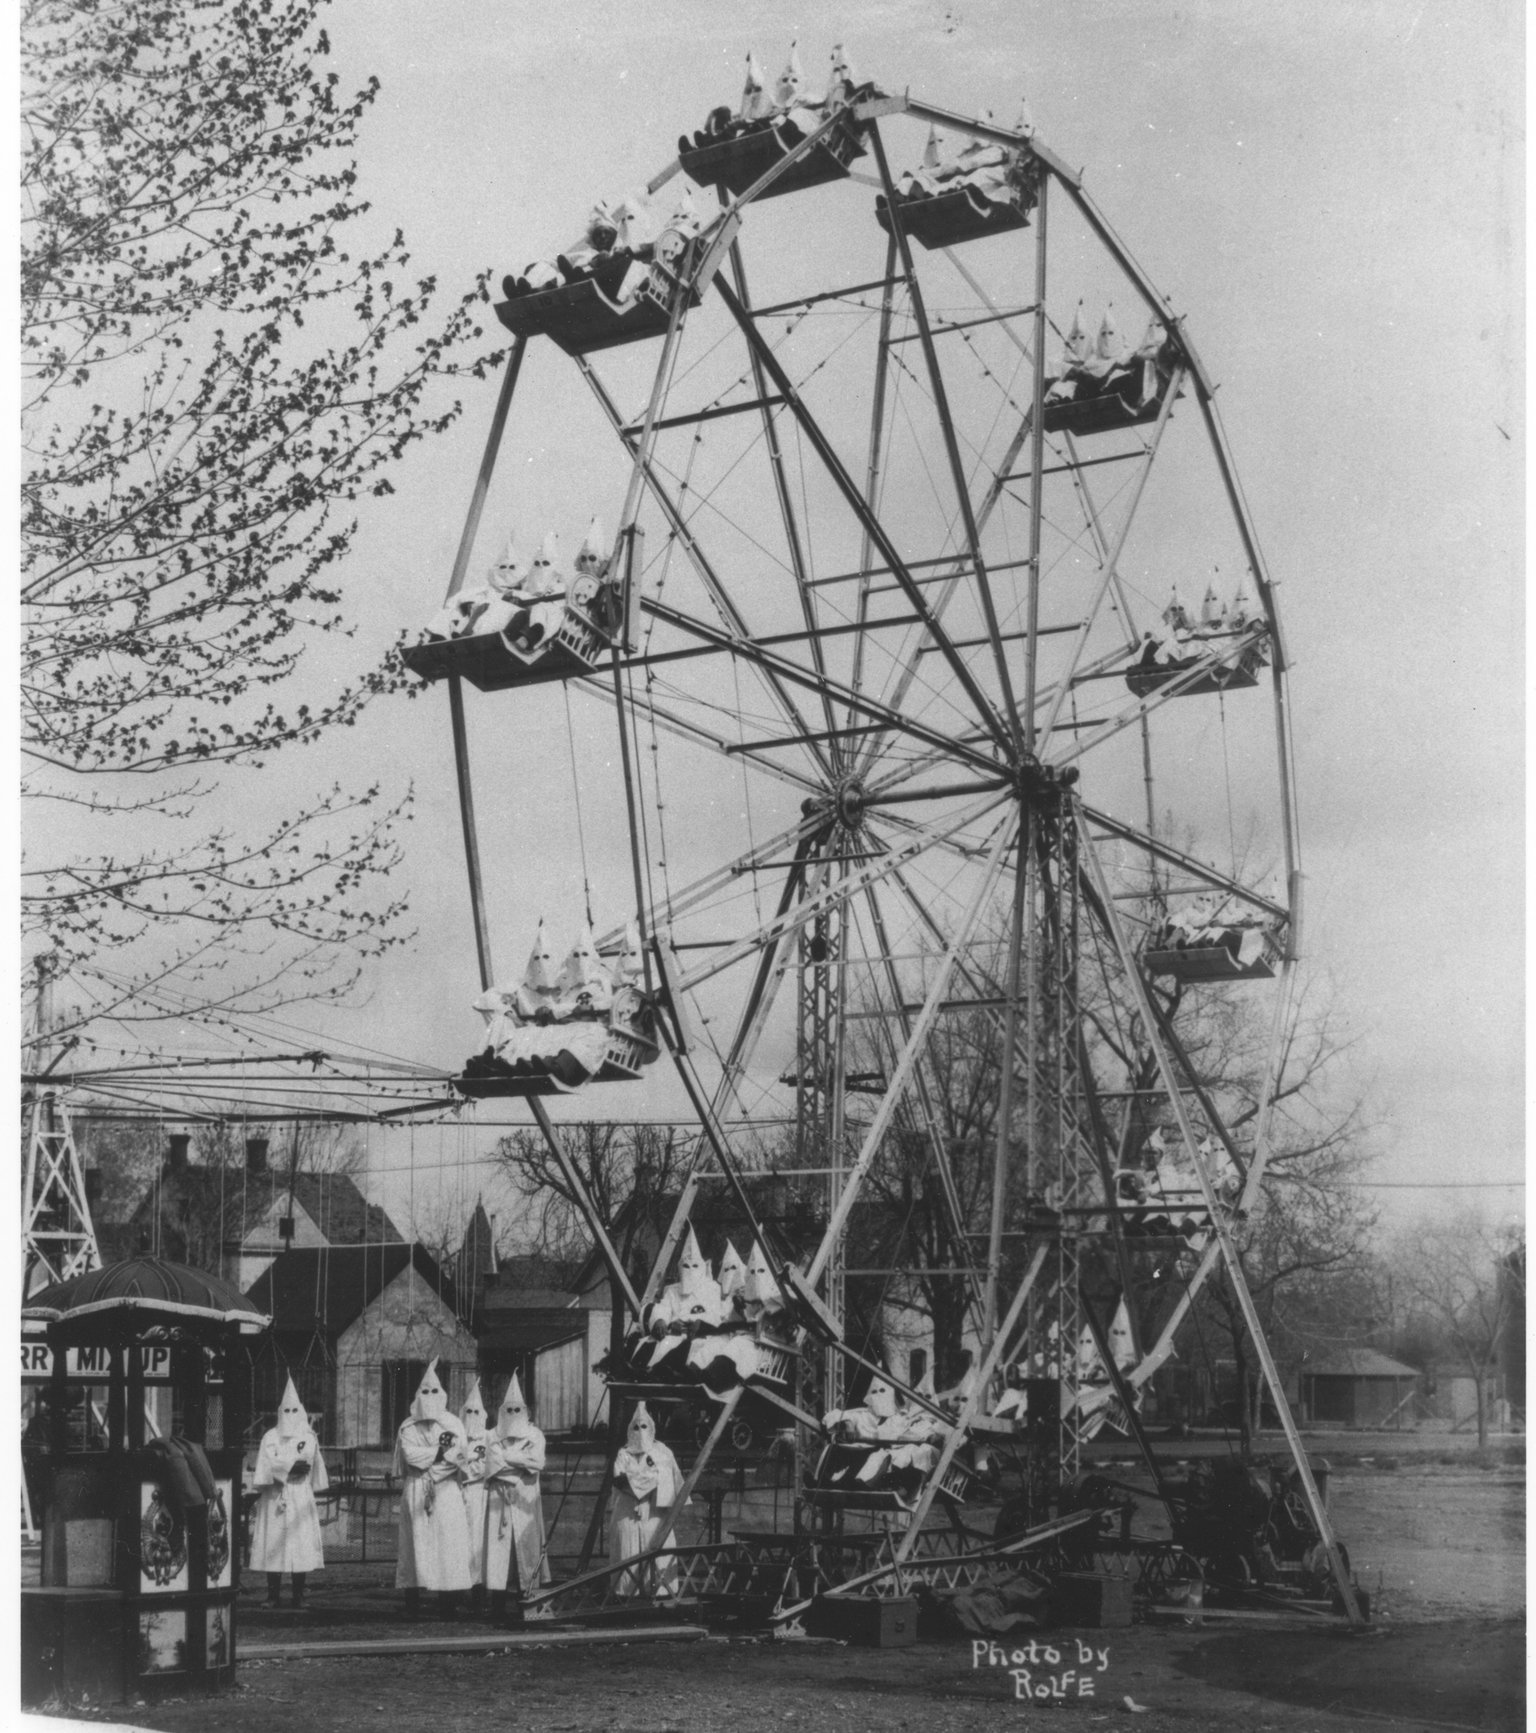 Robed Klan members ride three to a seat on a Ferris wheel while additional robed members stand at the base of the ride.